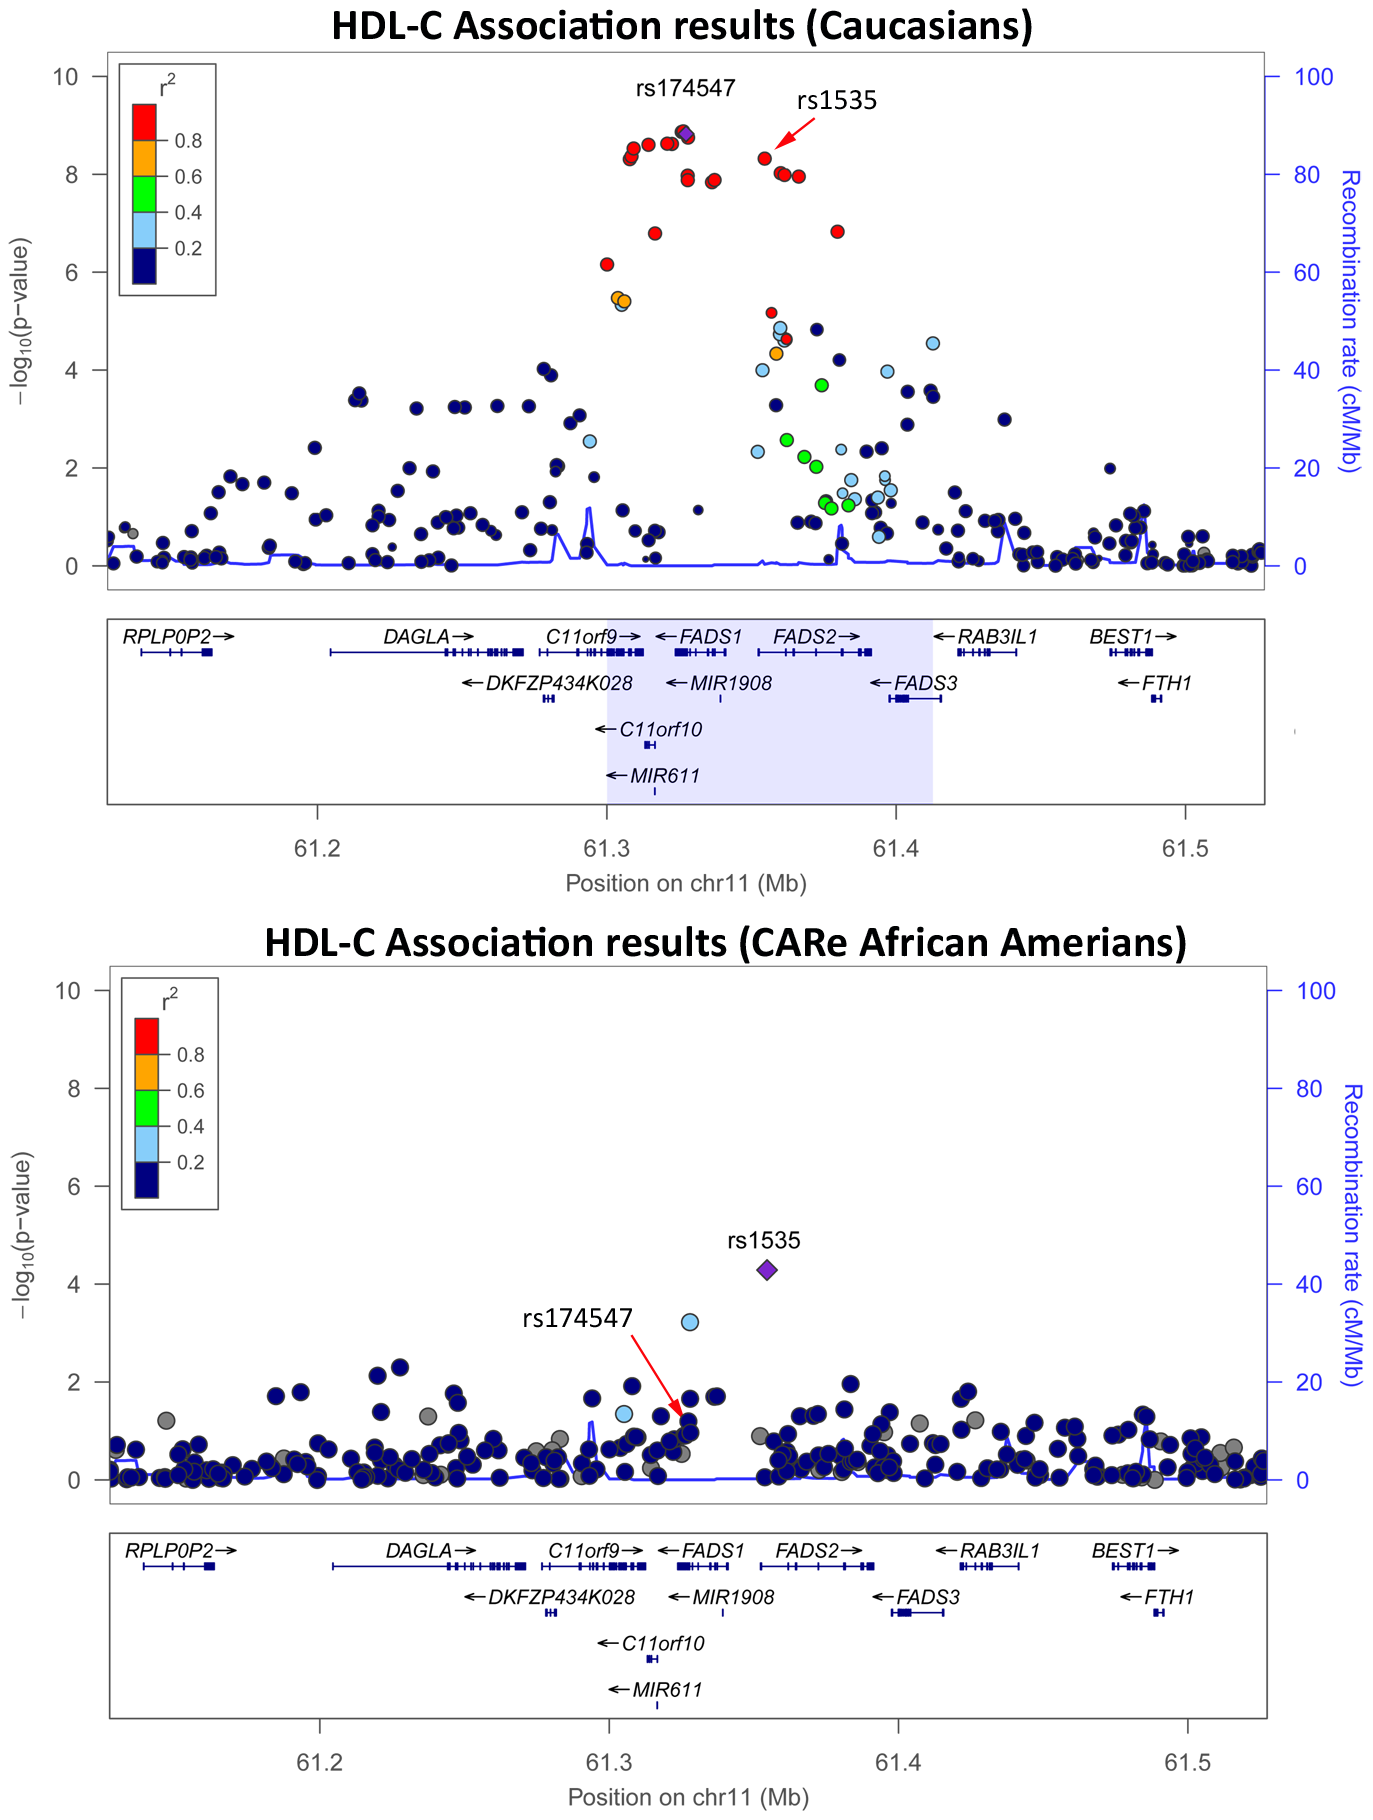 HDL-C association results in Caucasians (top panel) <em class=&quot;ref&quot;>[<b>26</b>]</em> and in the CARe African Americans (bottom panel) at the <i>FADS</i> locus.